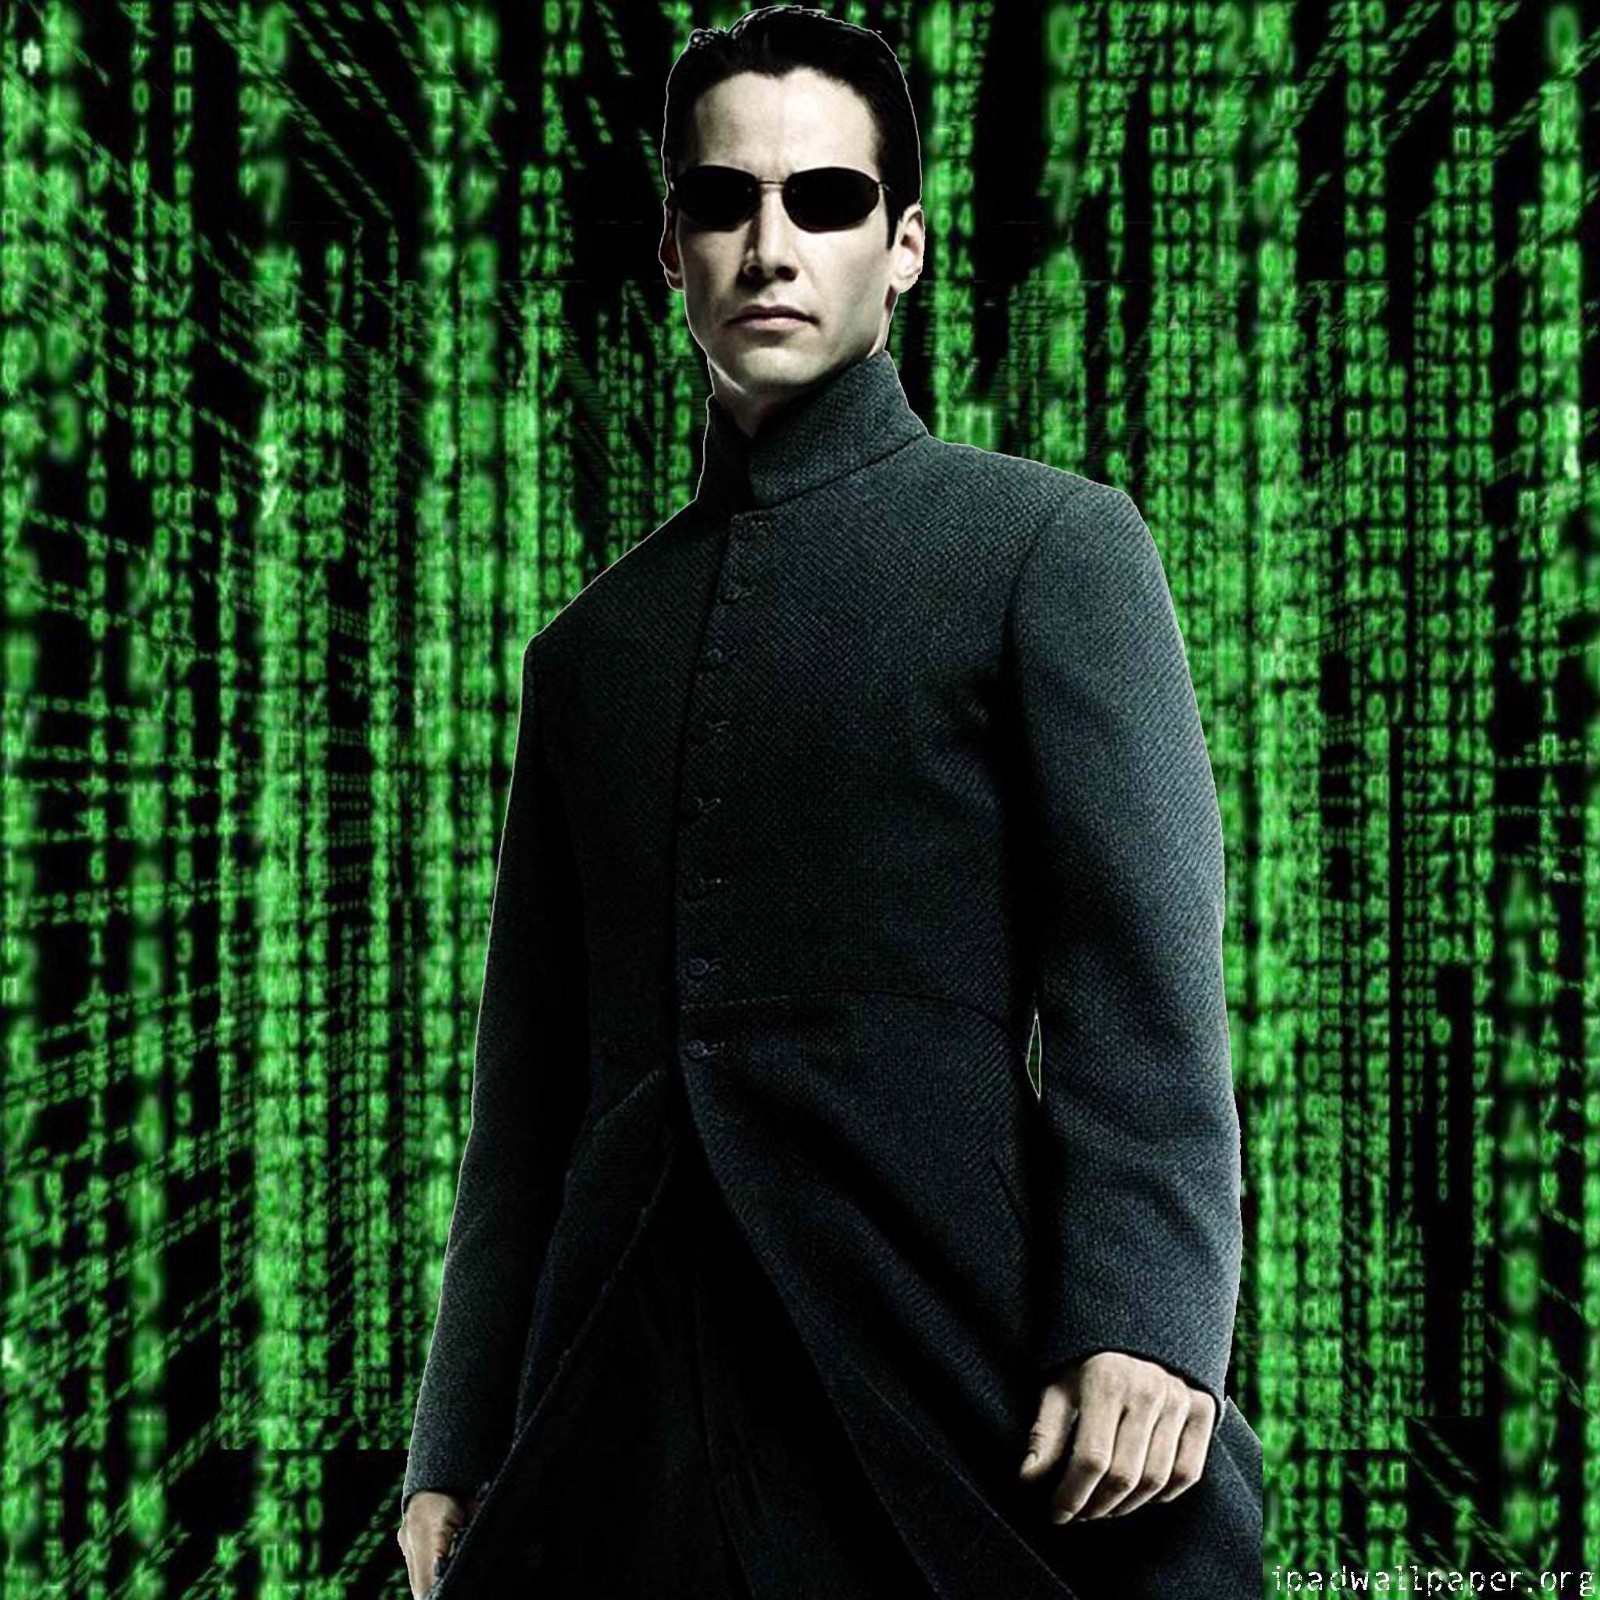 How To Become Neo From The Matrix With Data Science…